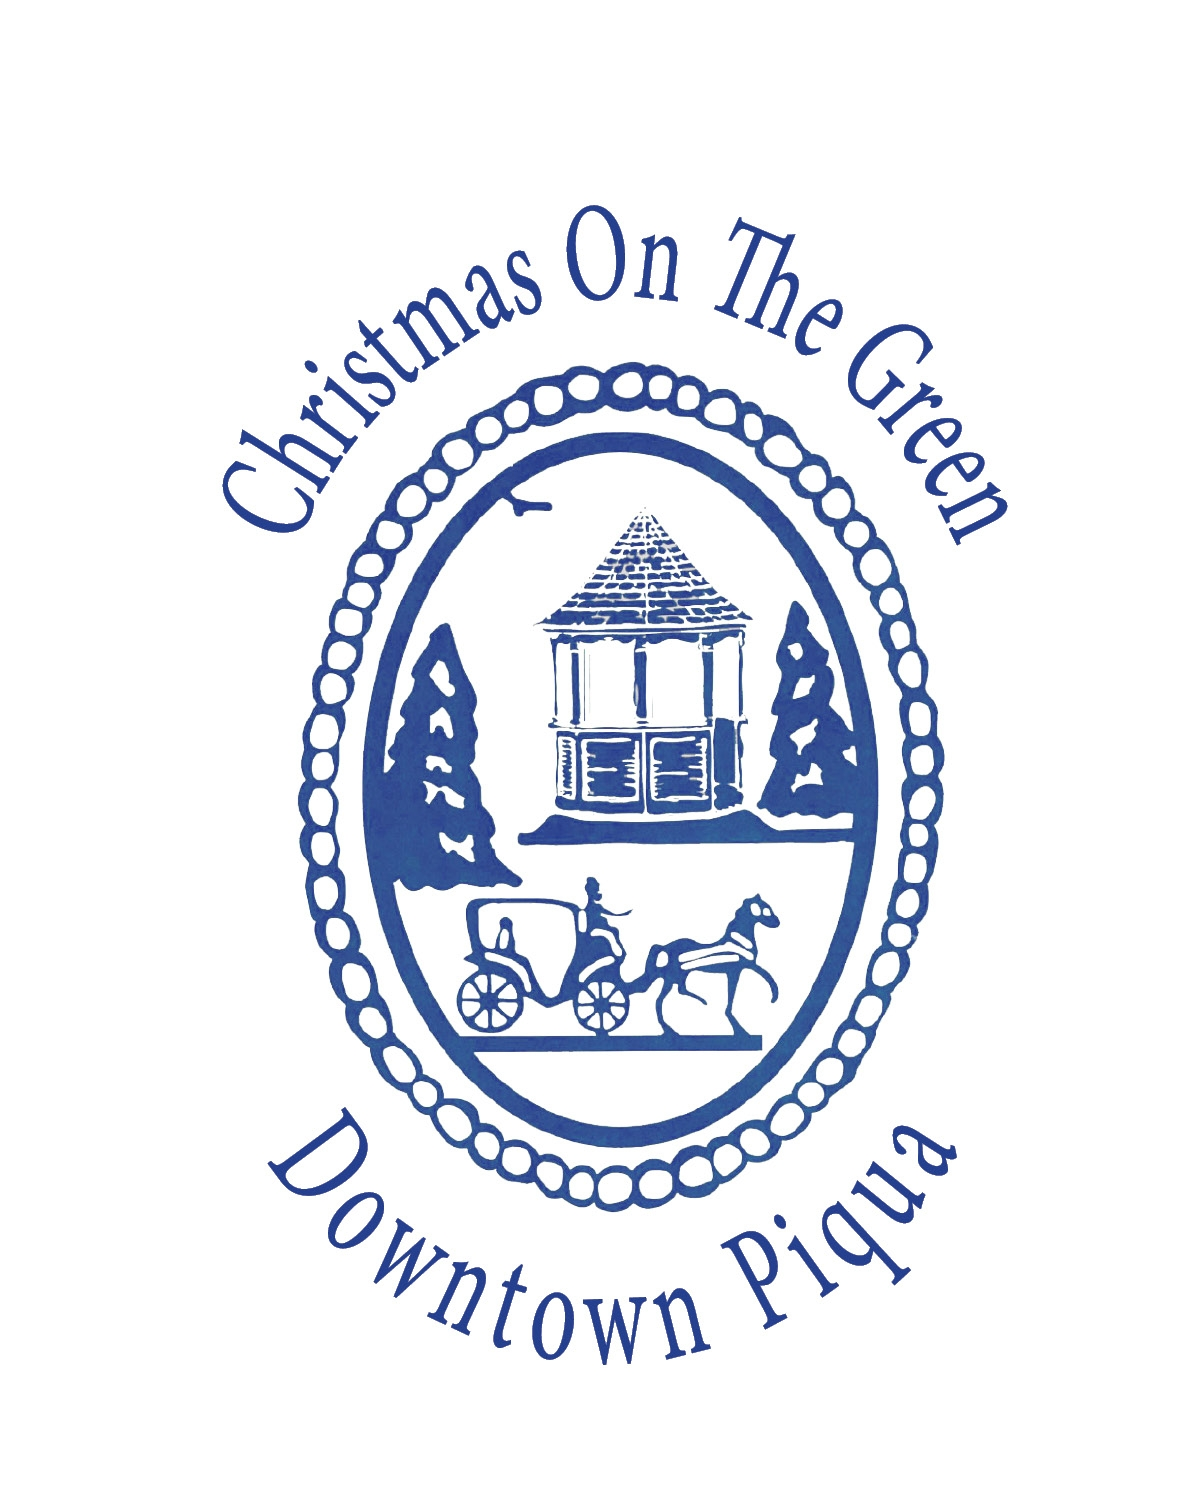 2016 Christmas on The Green Schedule of Events | Mainstreet Piqua